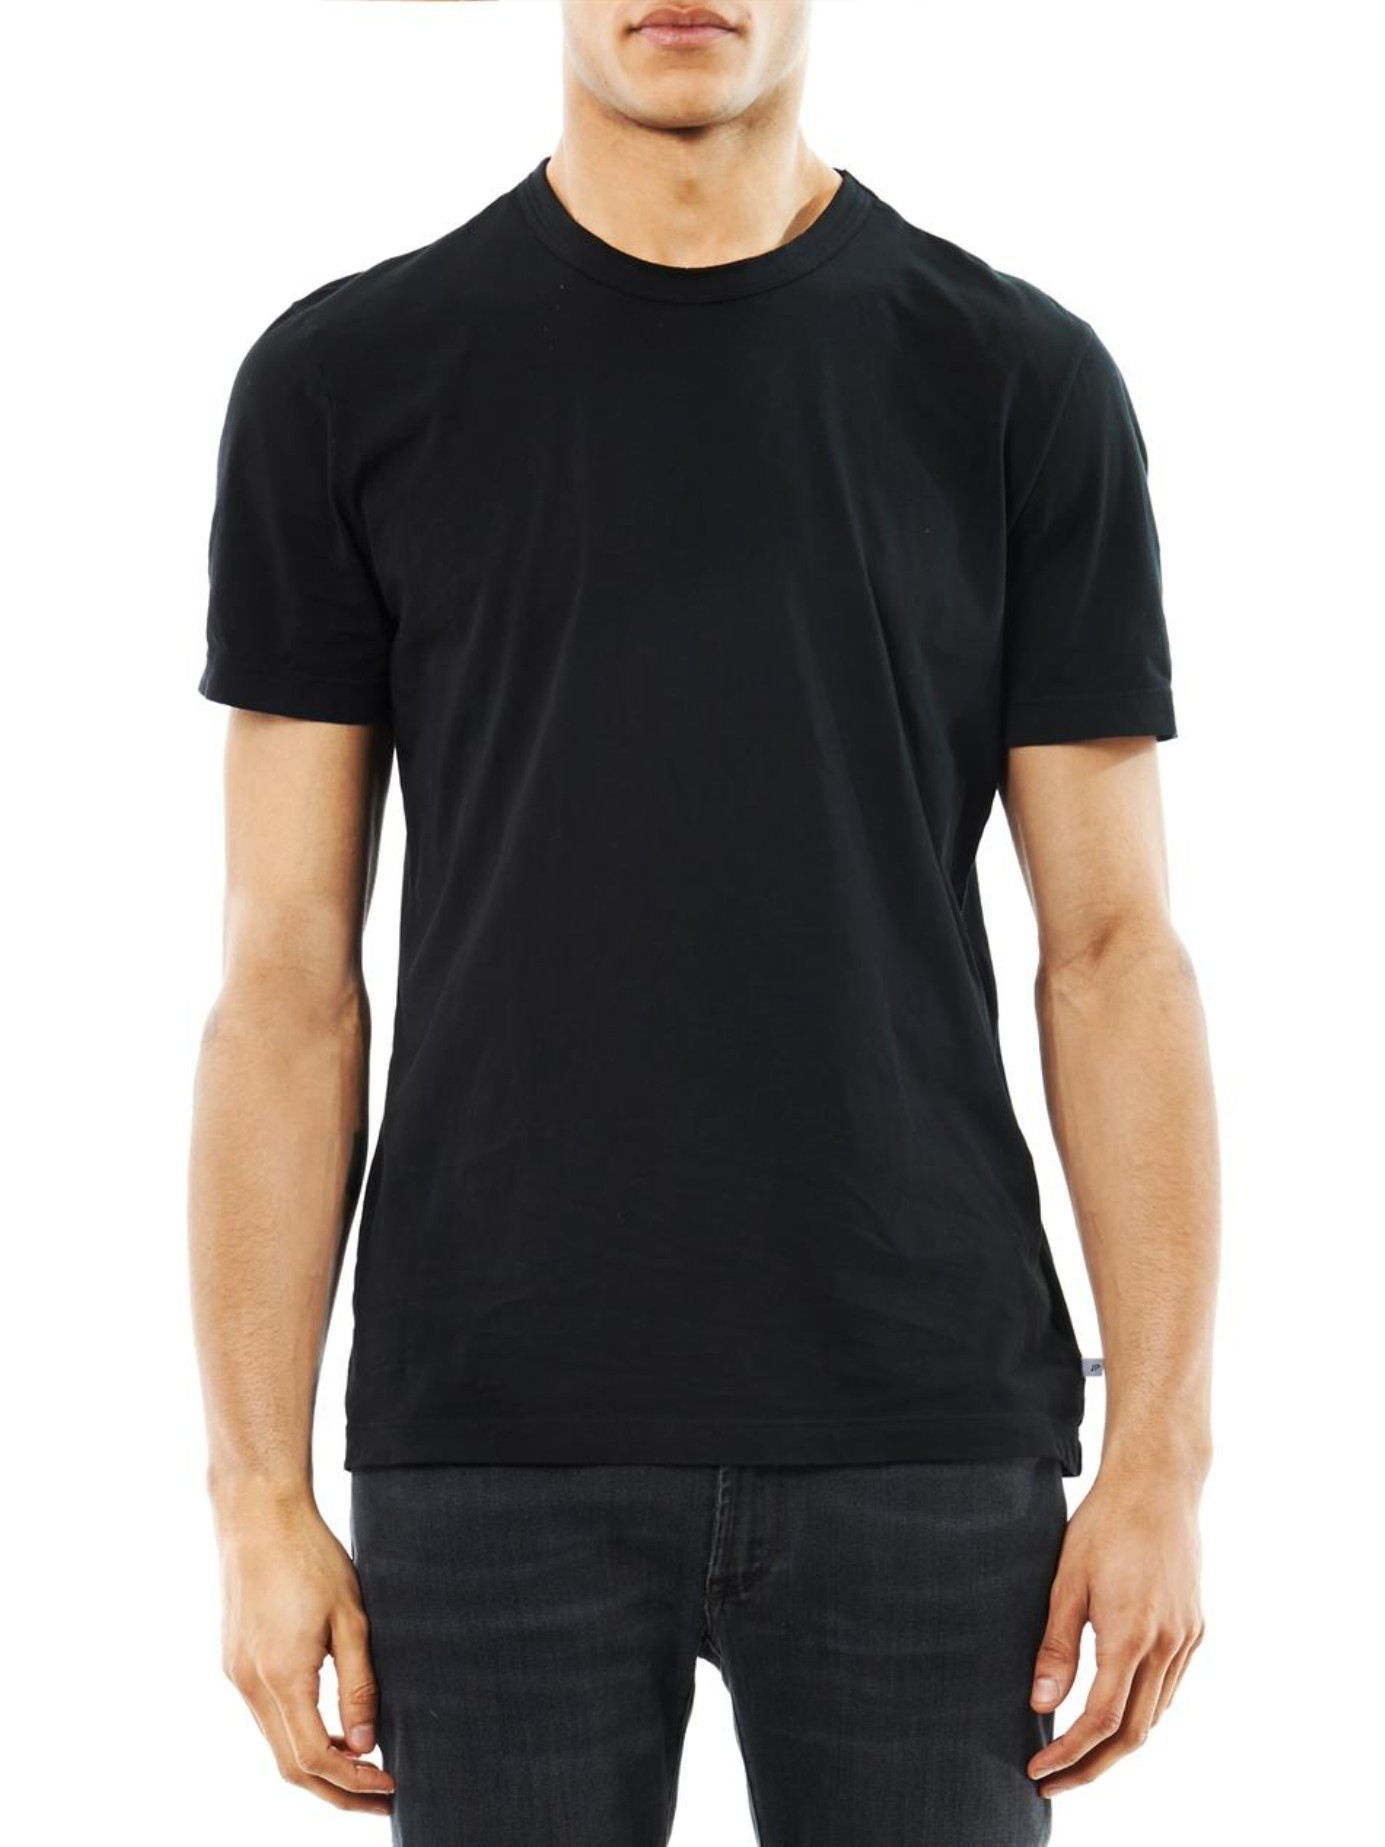 James perse Crew-Neck T-Shirt in Black for Men | Lyst